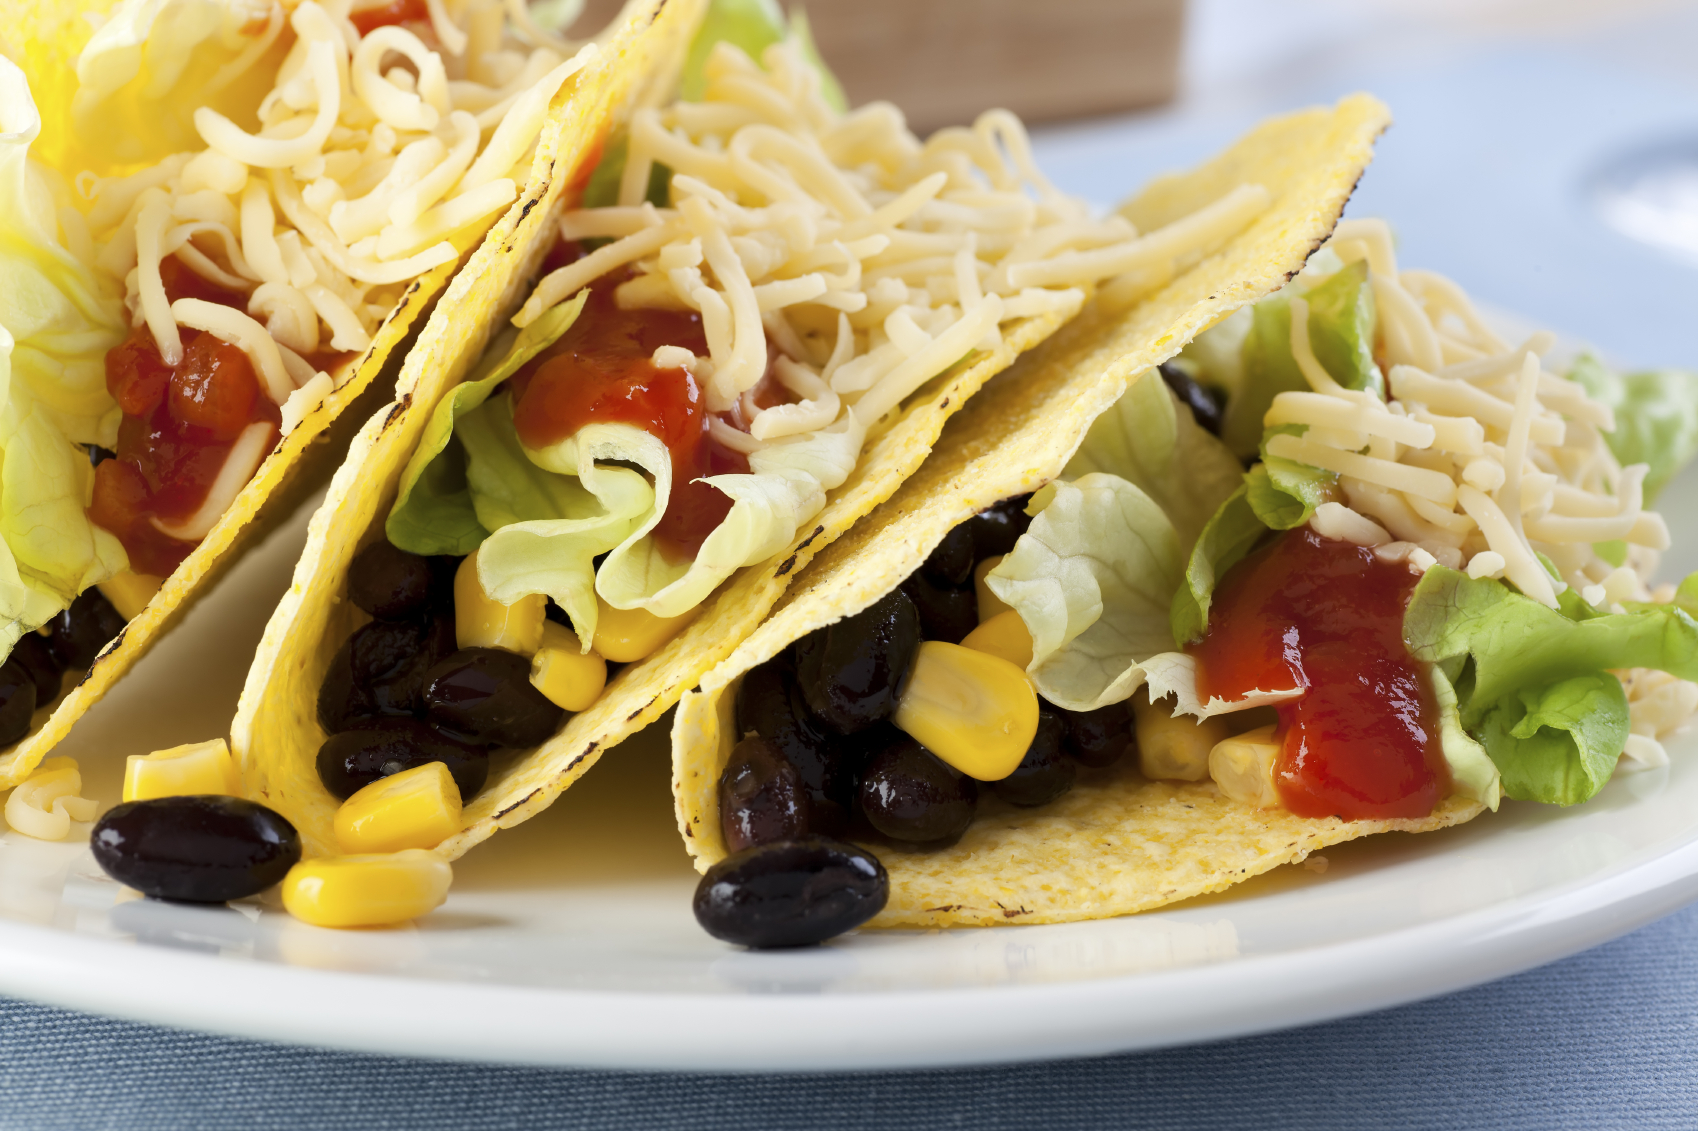 Texans Rave About Quot The Taco Cleanse Quot Diet Book Cbs News